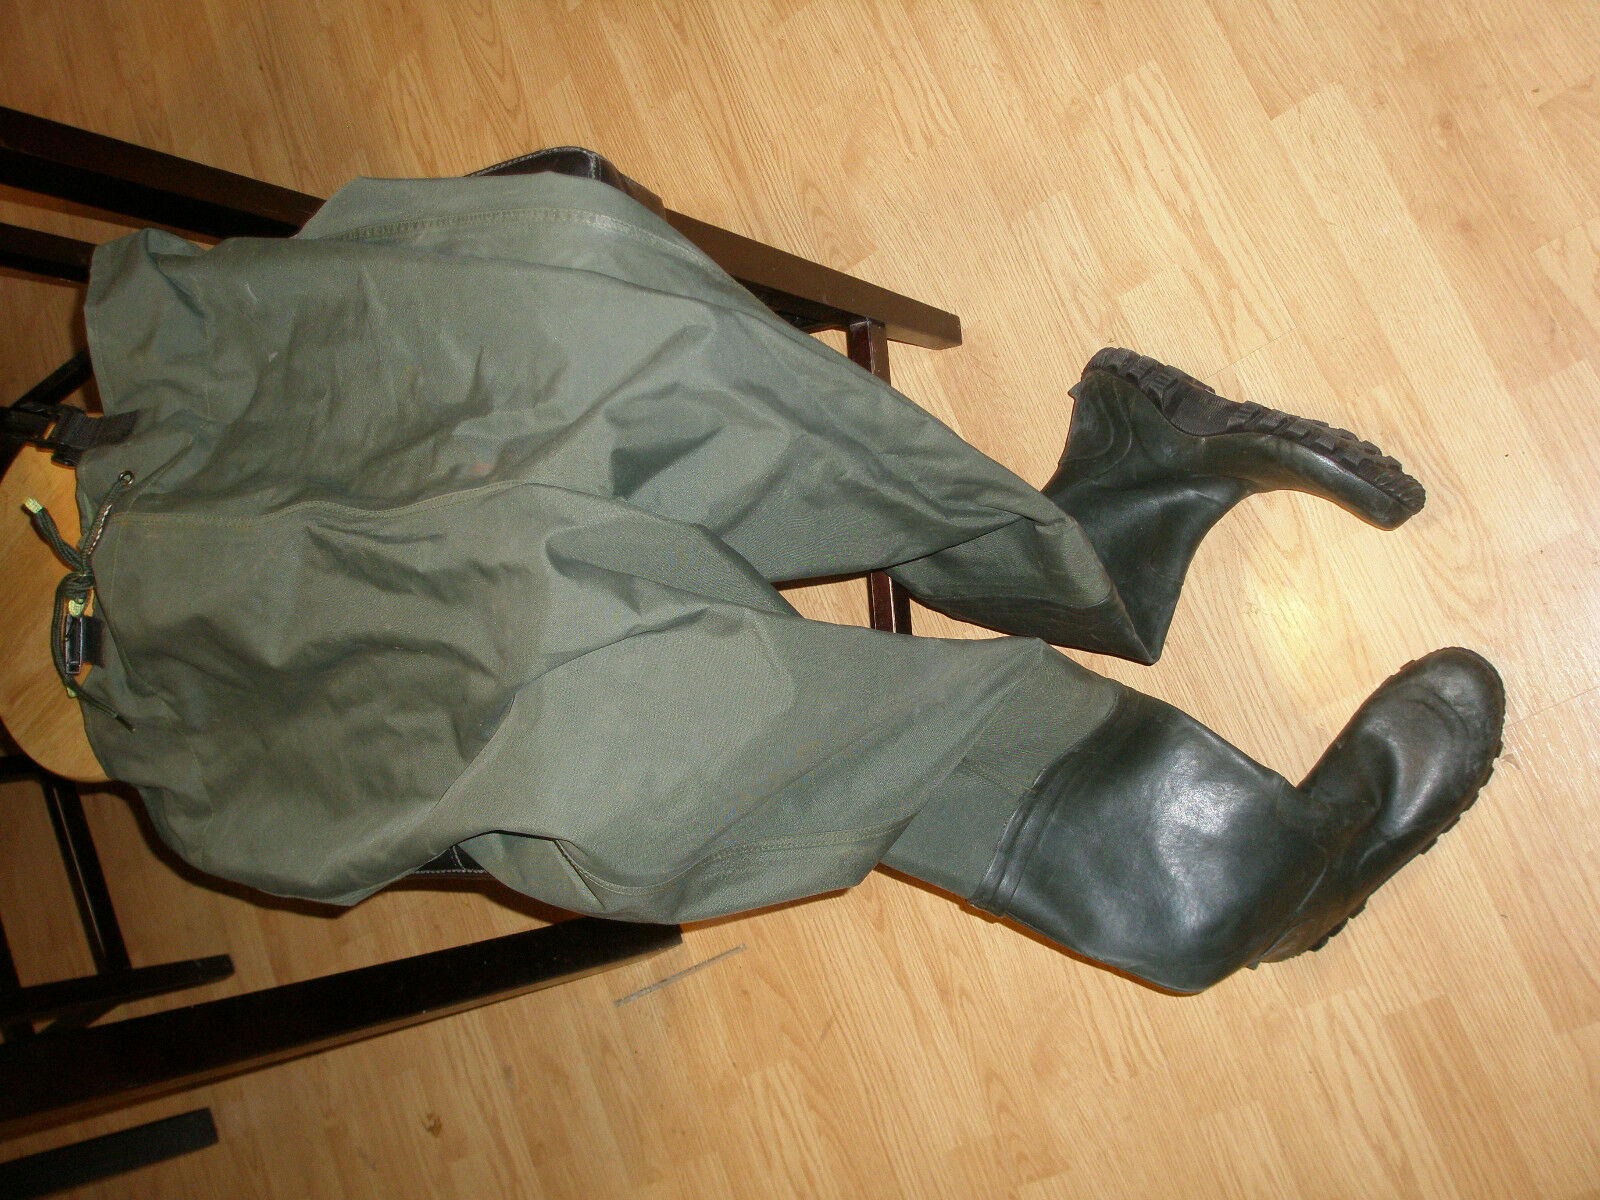 FROGG TOGG Hunting  Fishing Waders Size 12  sale online save 70%